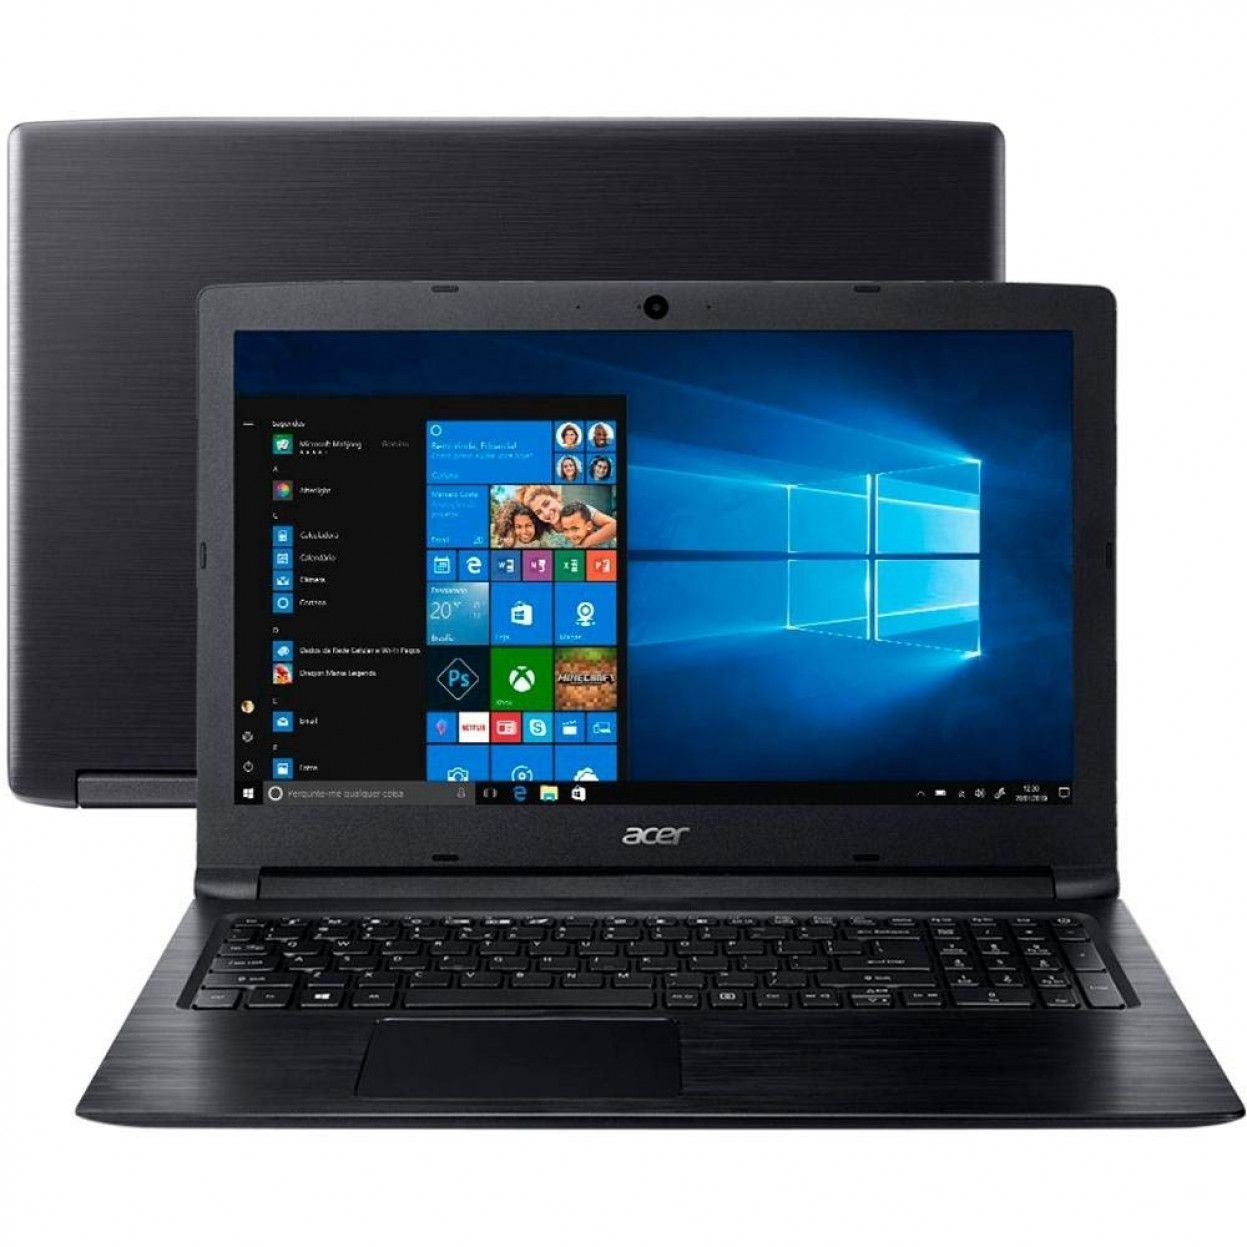 NOTEBOOK ACER A315-33-C DUAL CORE N3060 4gb 500gb